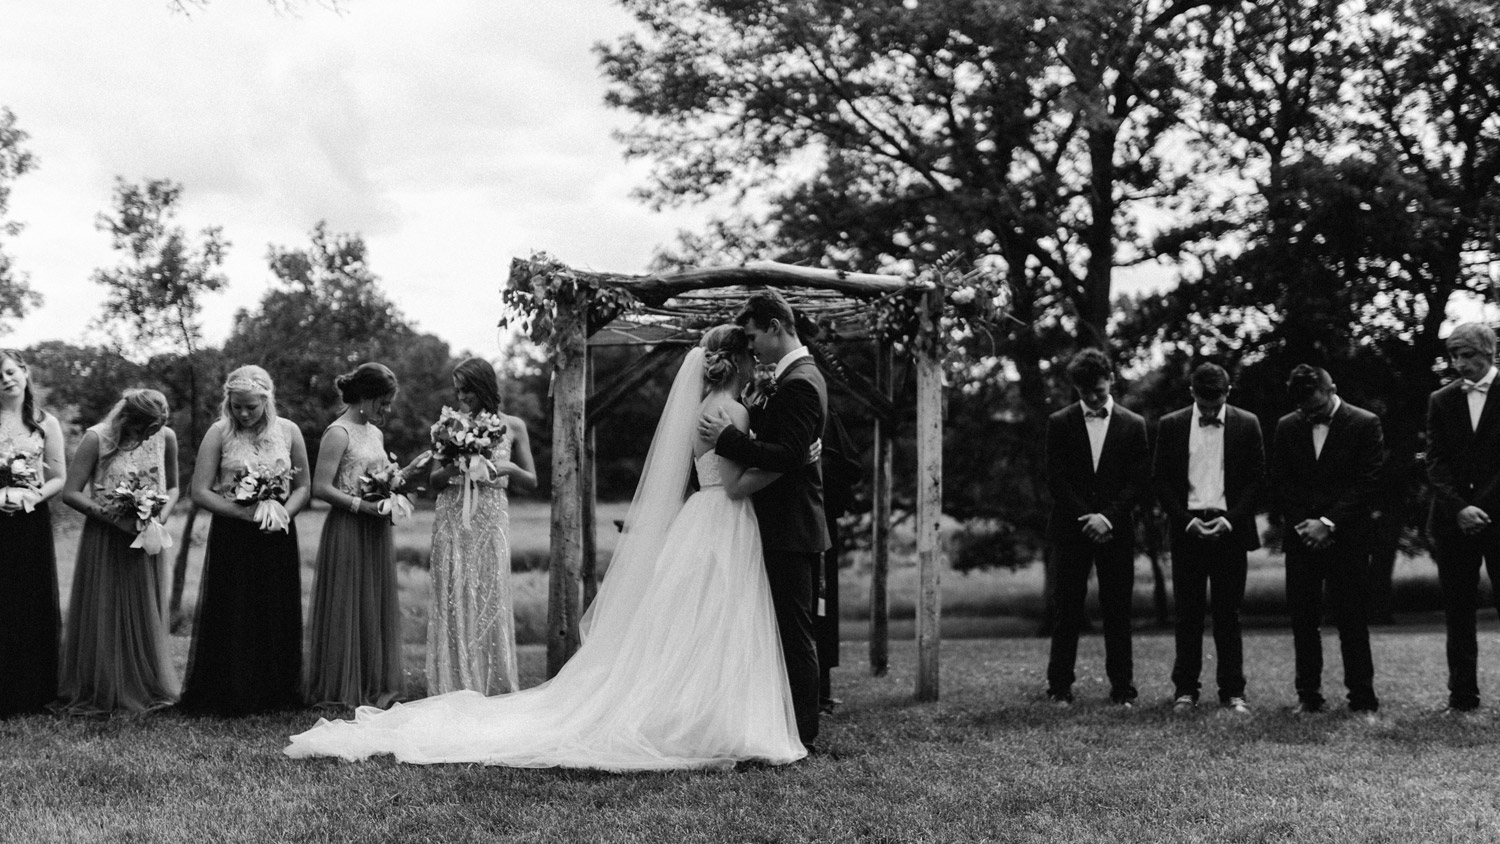 prayer during outdoor ceremony at rustic oaks